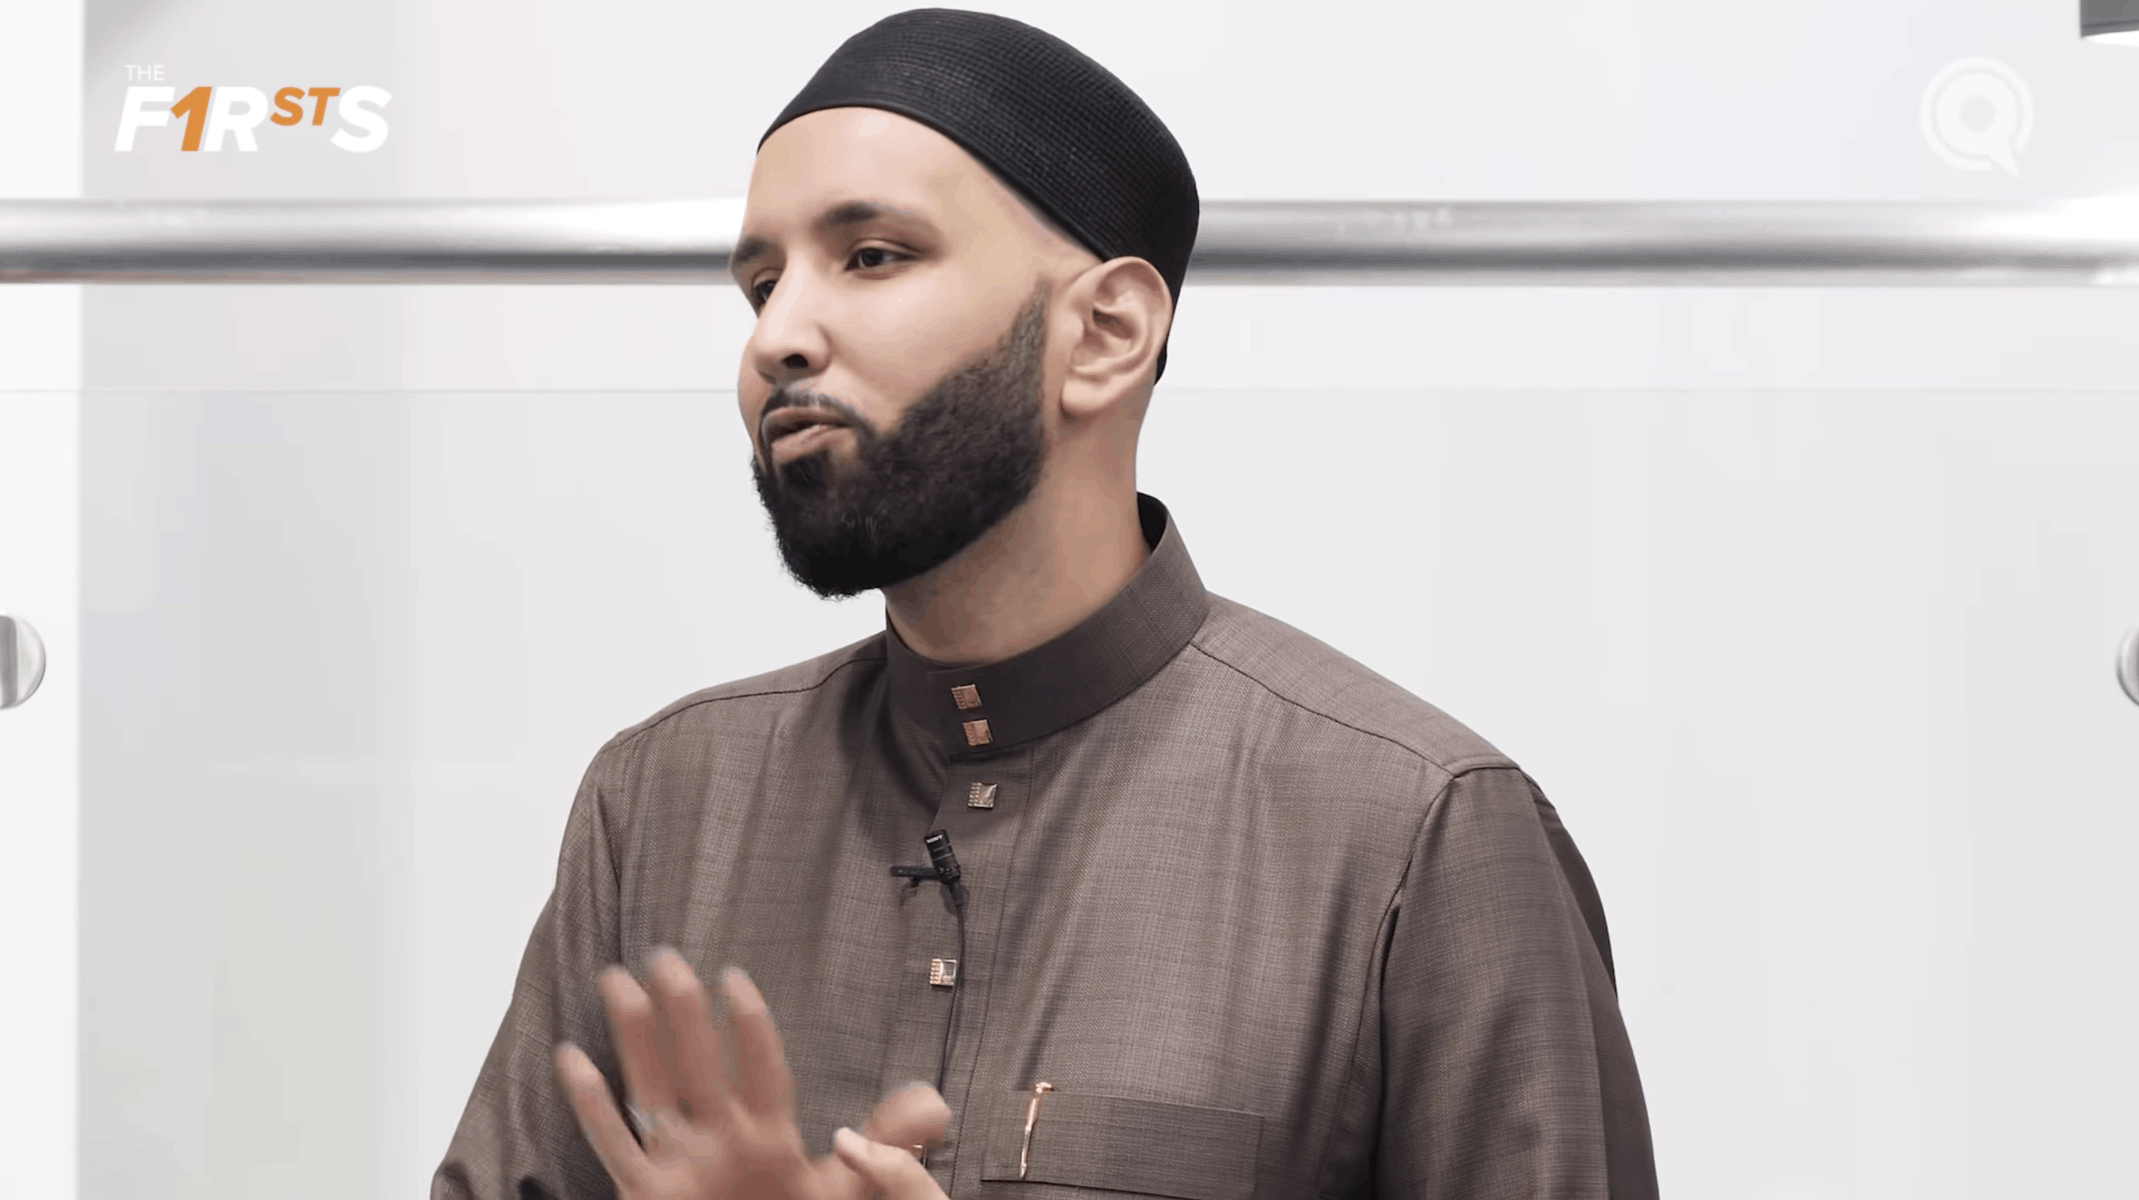 Omar Suleiman – The Firsts (Episode 3): Waraqa Ibn Nawfal: The First to Confirm Prophethood